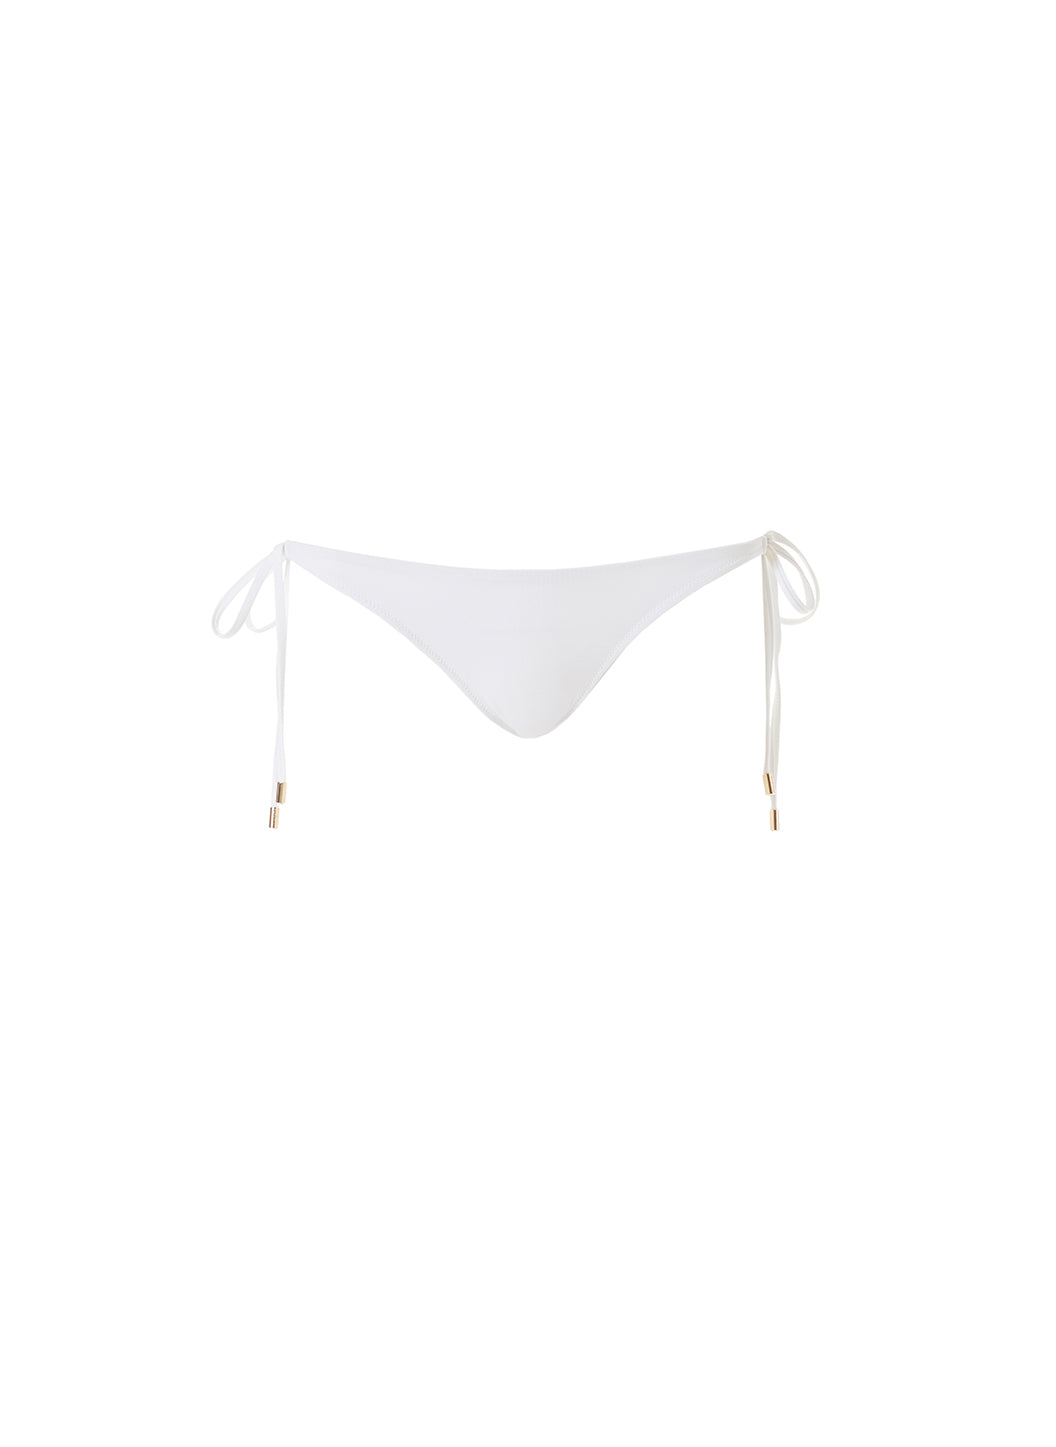 Exclusive Cancun Tie-Side Bottoms Plain White - Melissa Odabash Swimwear